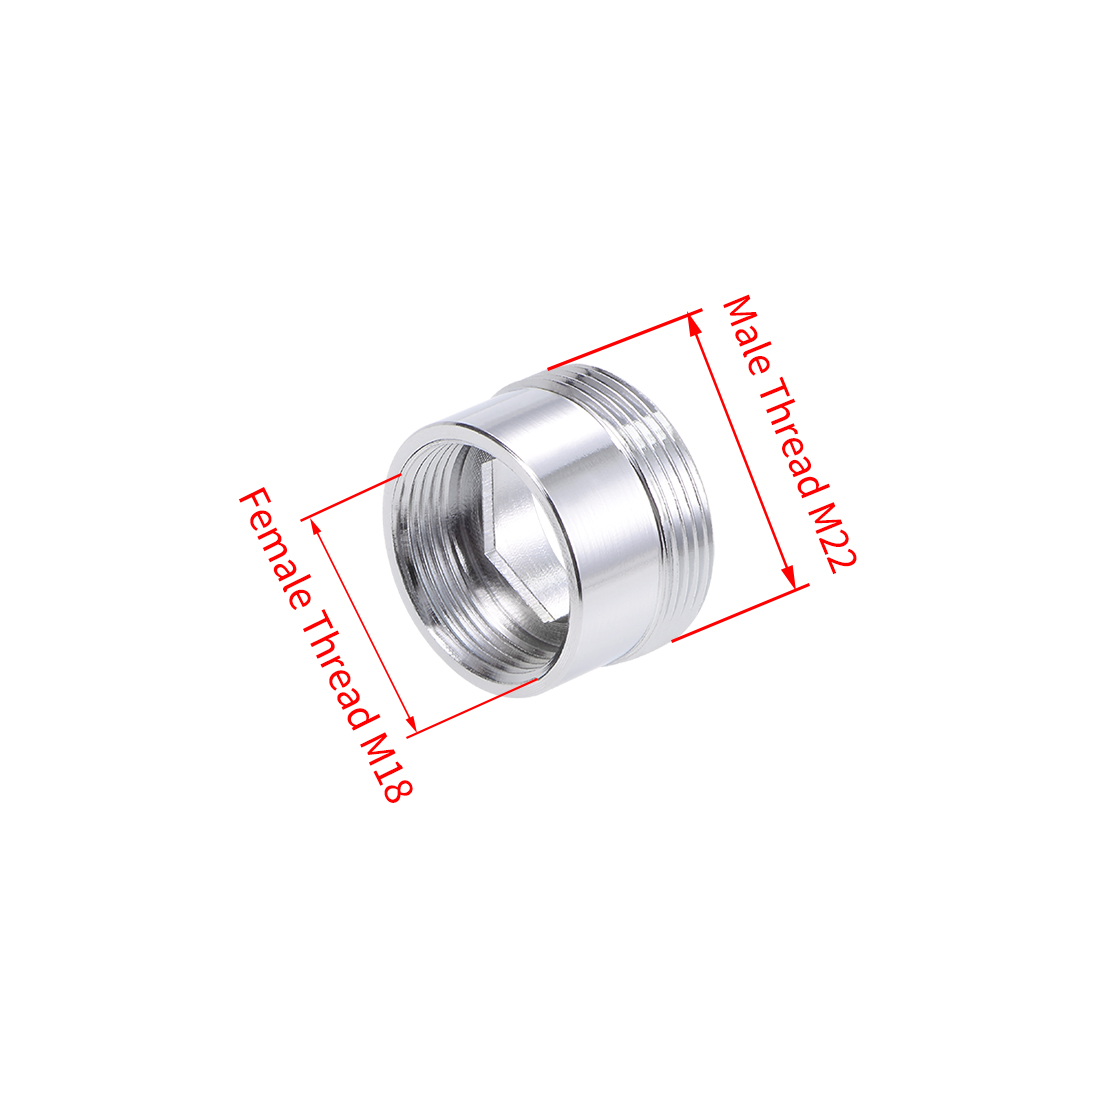 Uxcell Faucet Adapter M22 Male Thread To M18 Female Thread Copper Aerator For Garden Hose